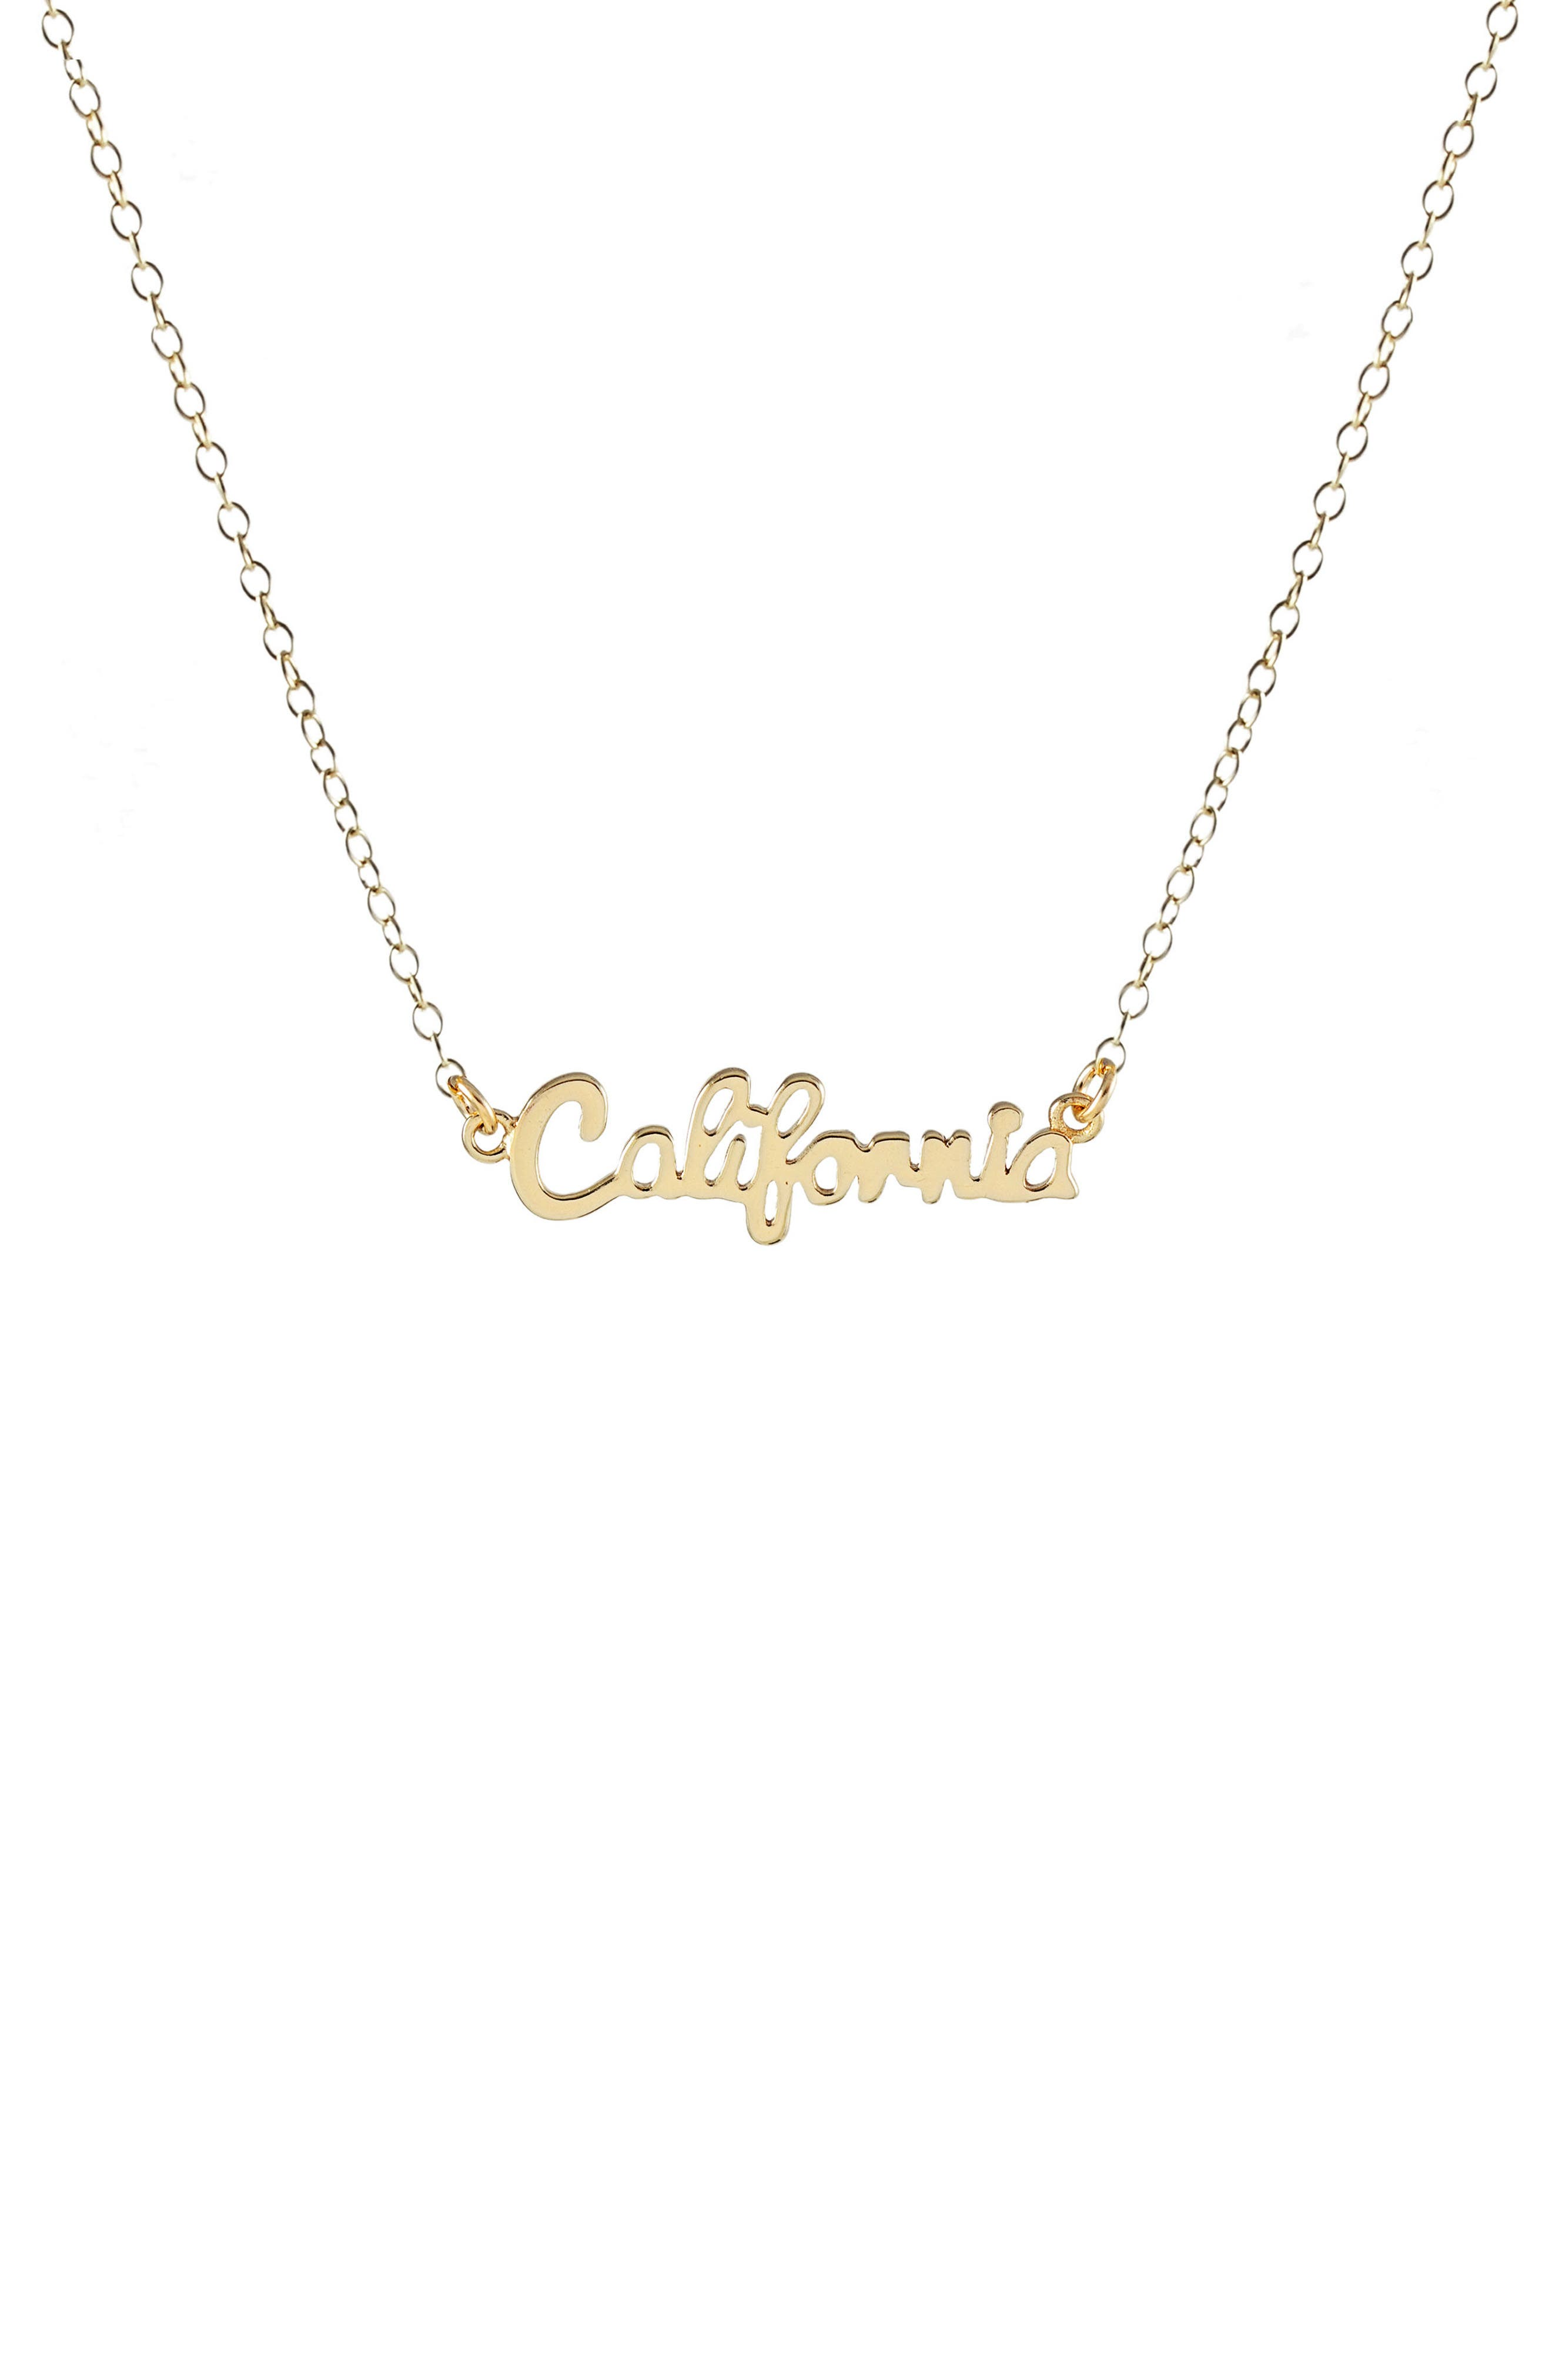 State Script Charm Necklace,                             Main thumbnail 1, color,                             CALIFORNIA - GOLD